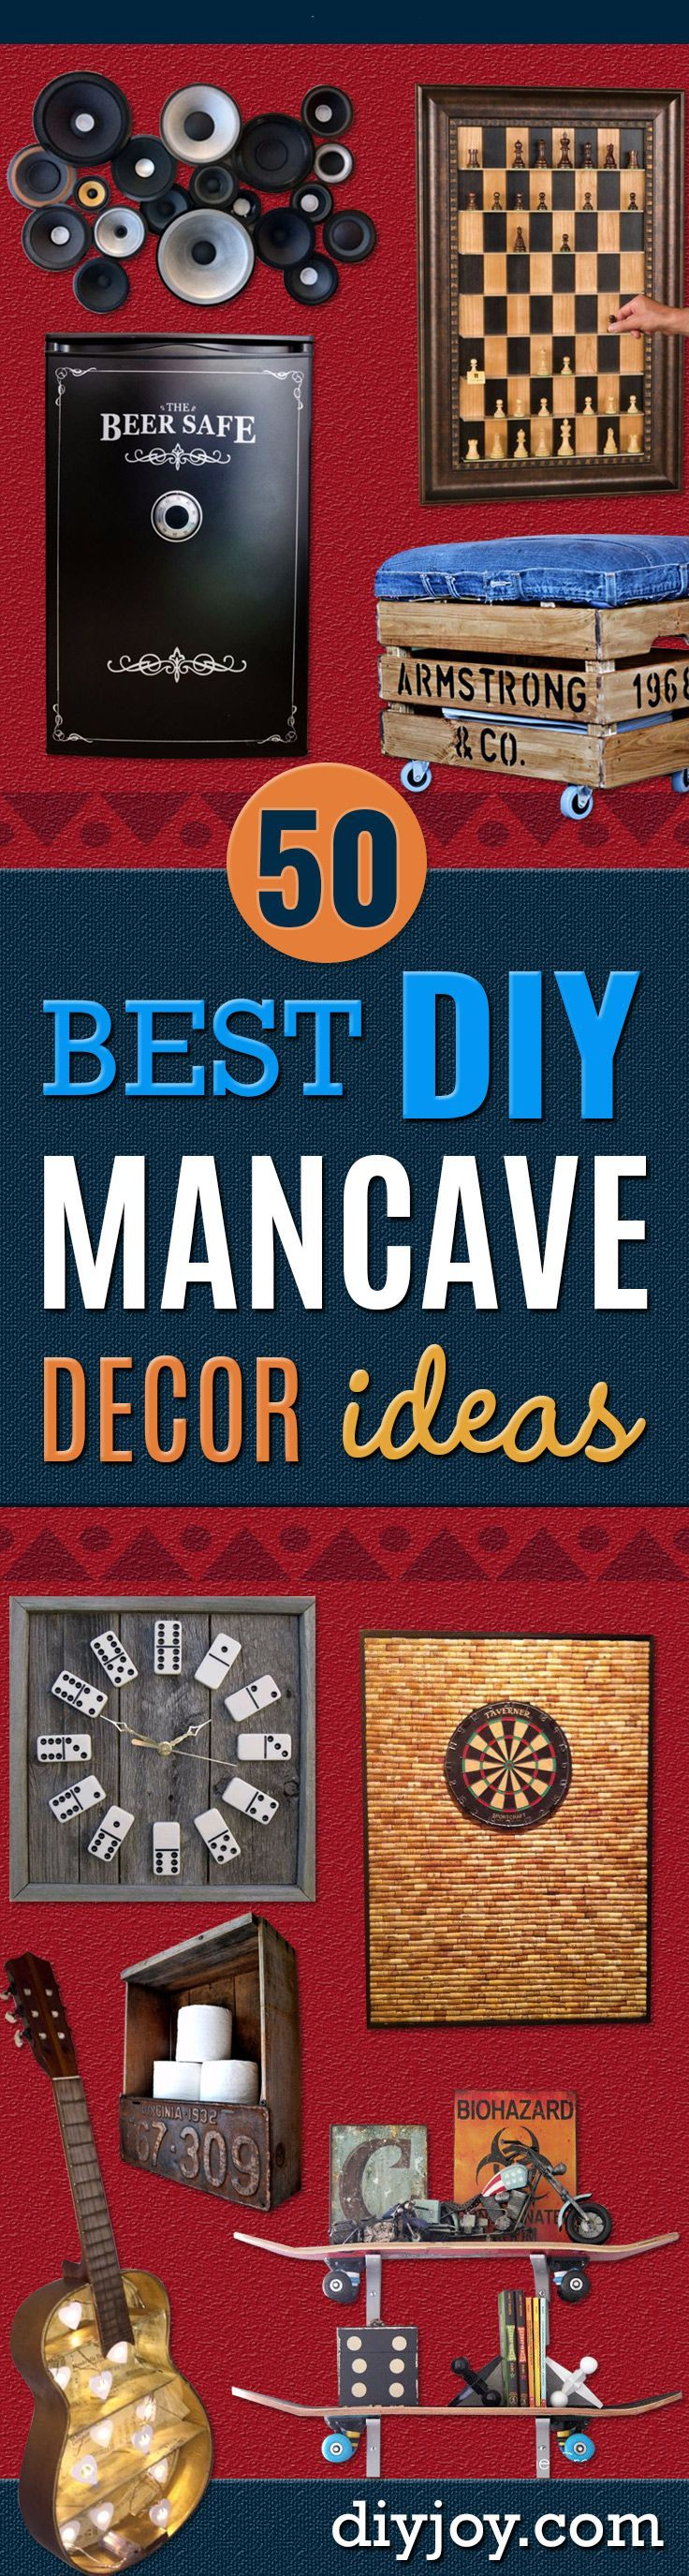 Man Cave Ideas For Christmas : Best cool diy ideas images on pinterest creative